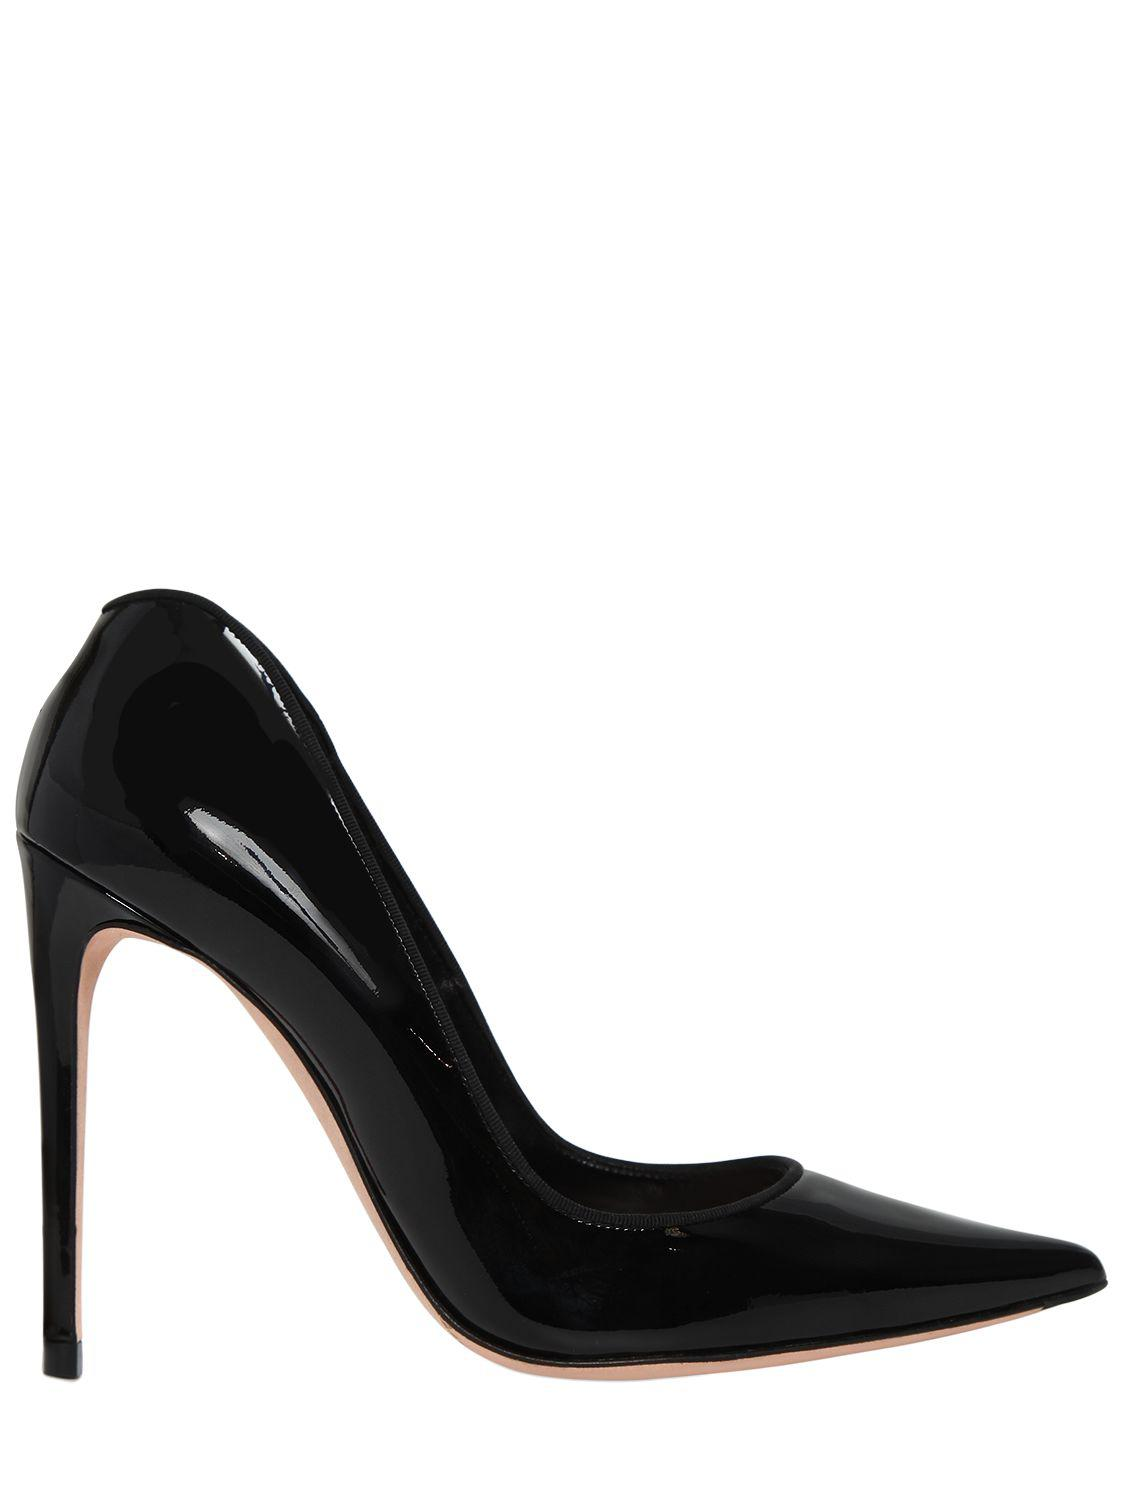 Alexander McQueen 105MM PATENT LEATHER PUMPS Visit Outlet Lowest Price Get To Buy Cheap Online Wiki kuQnD1